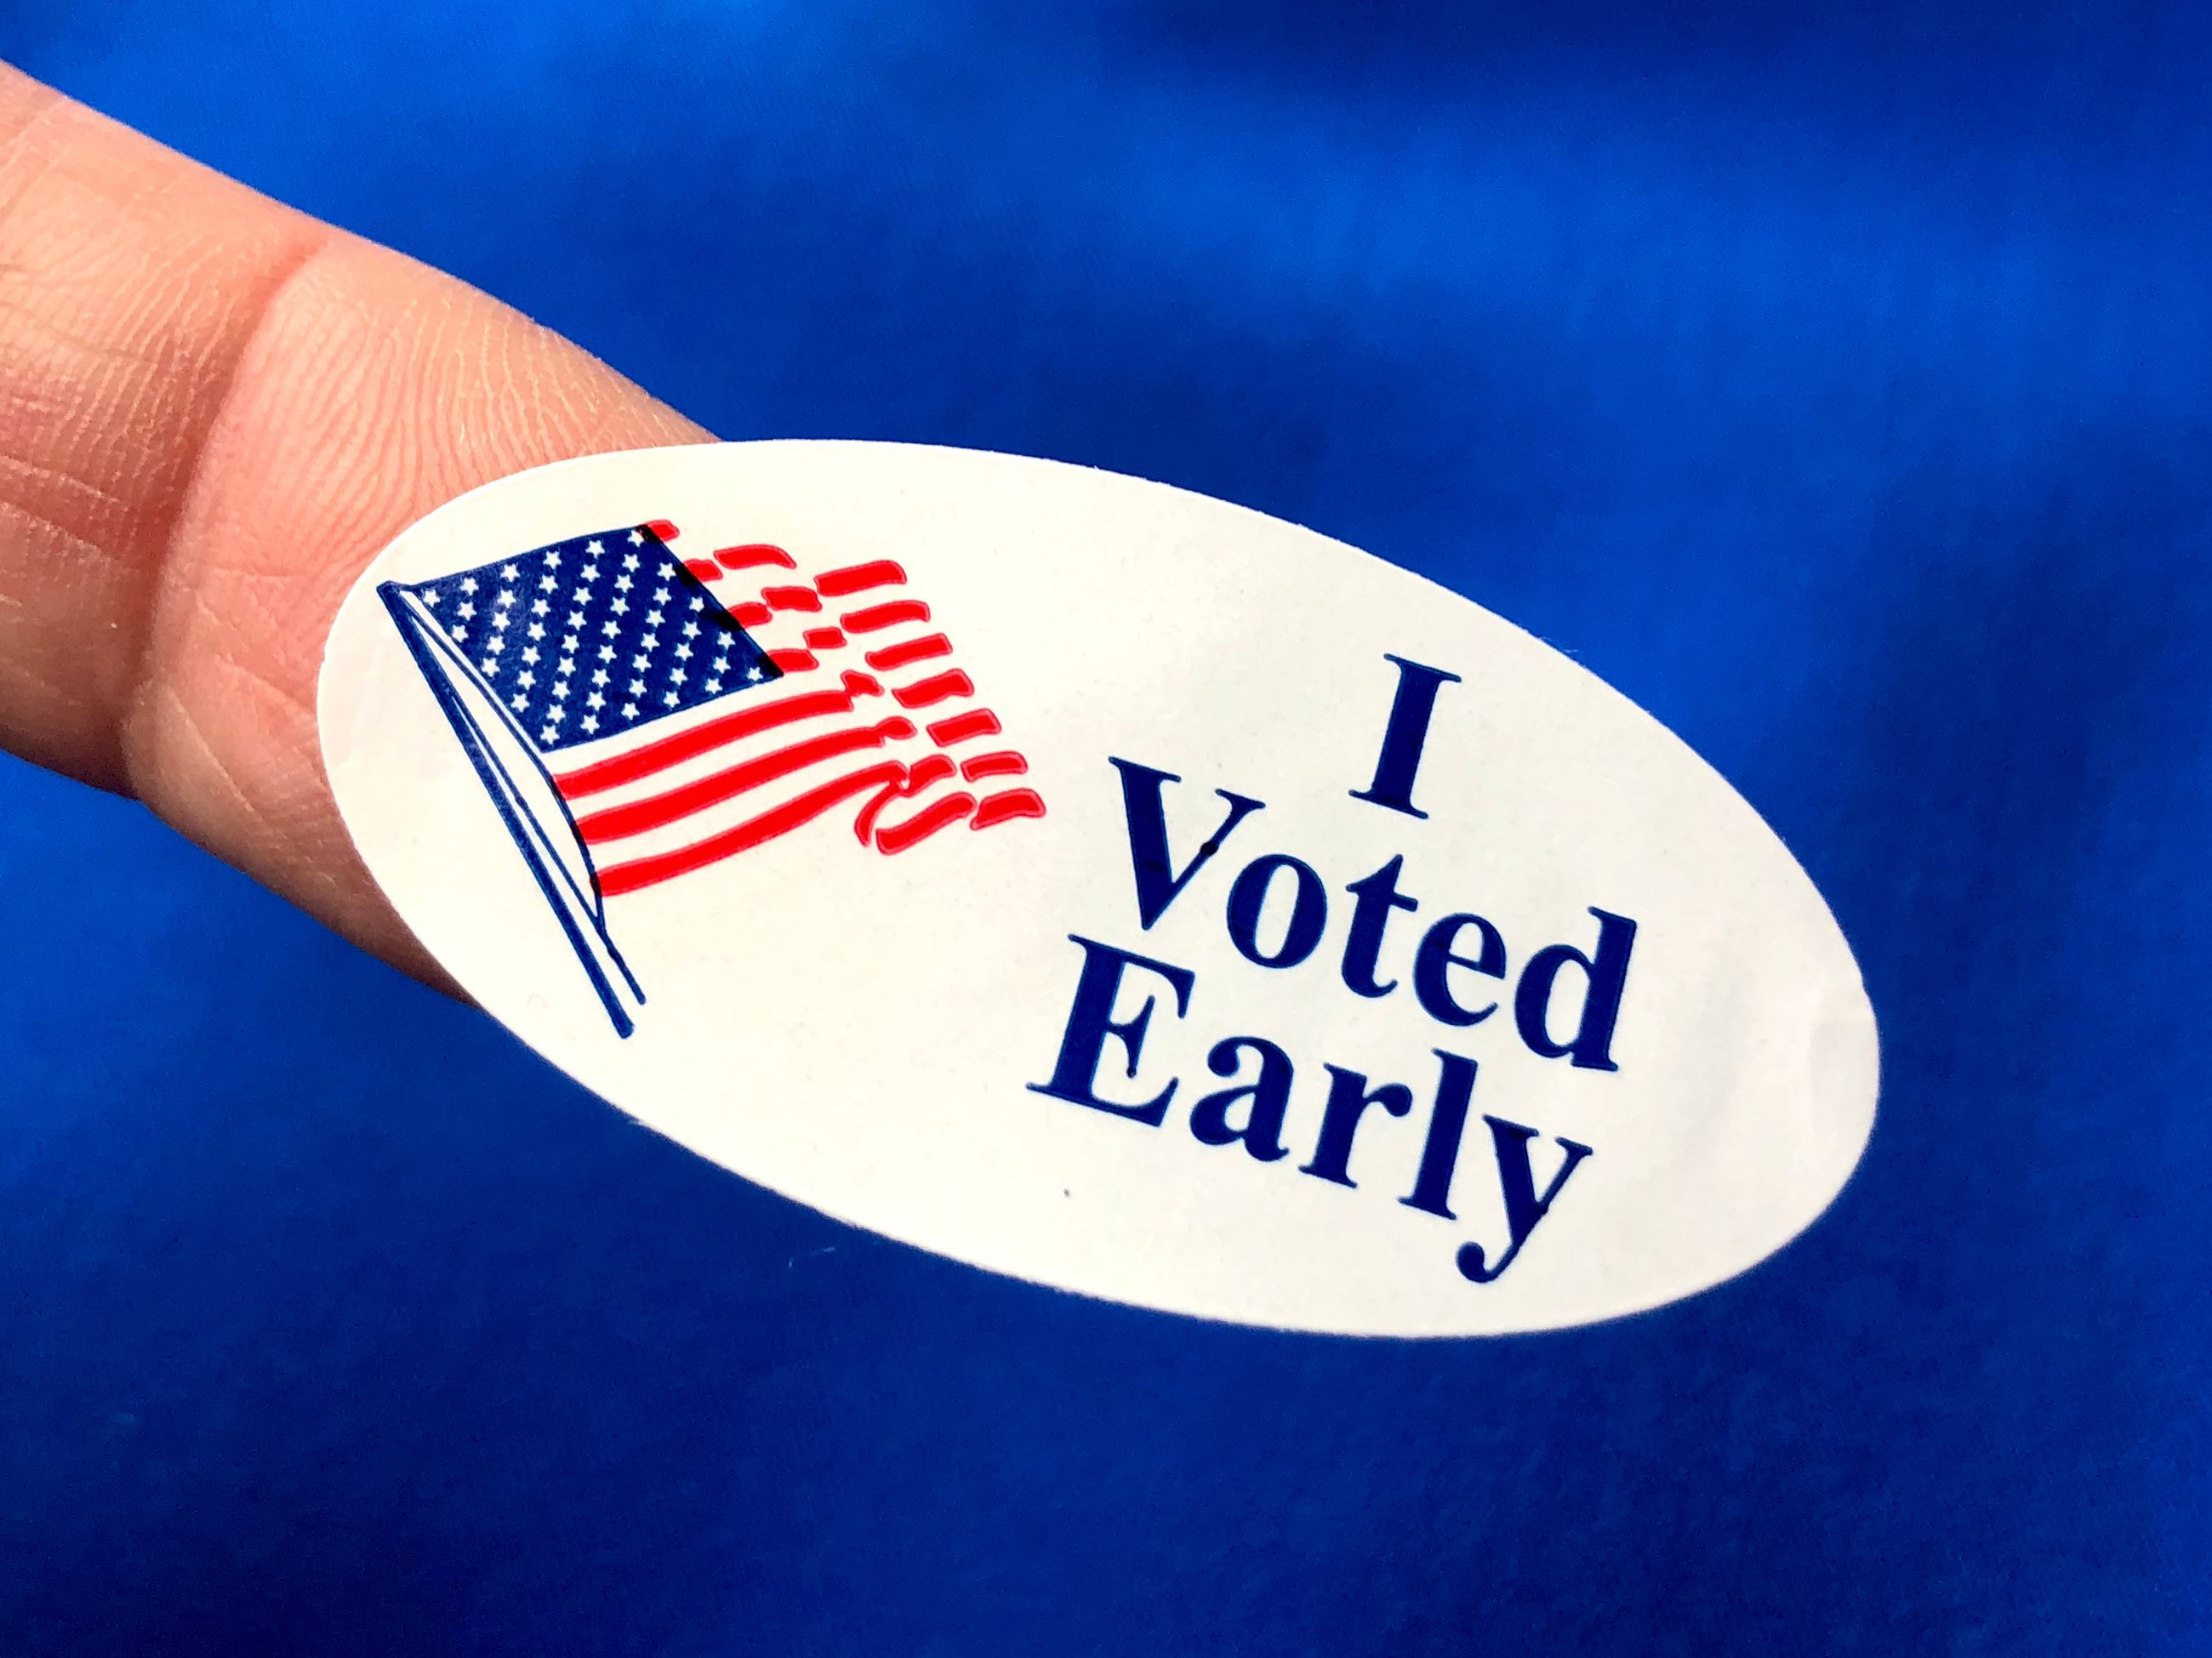 Voted Early Sticker